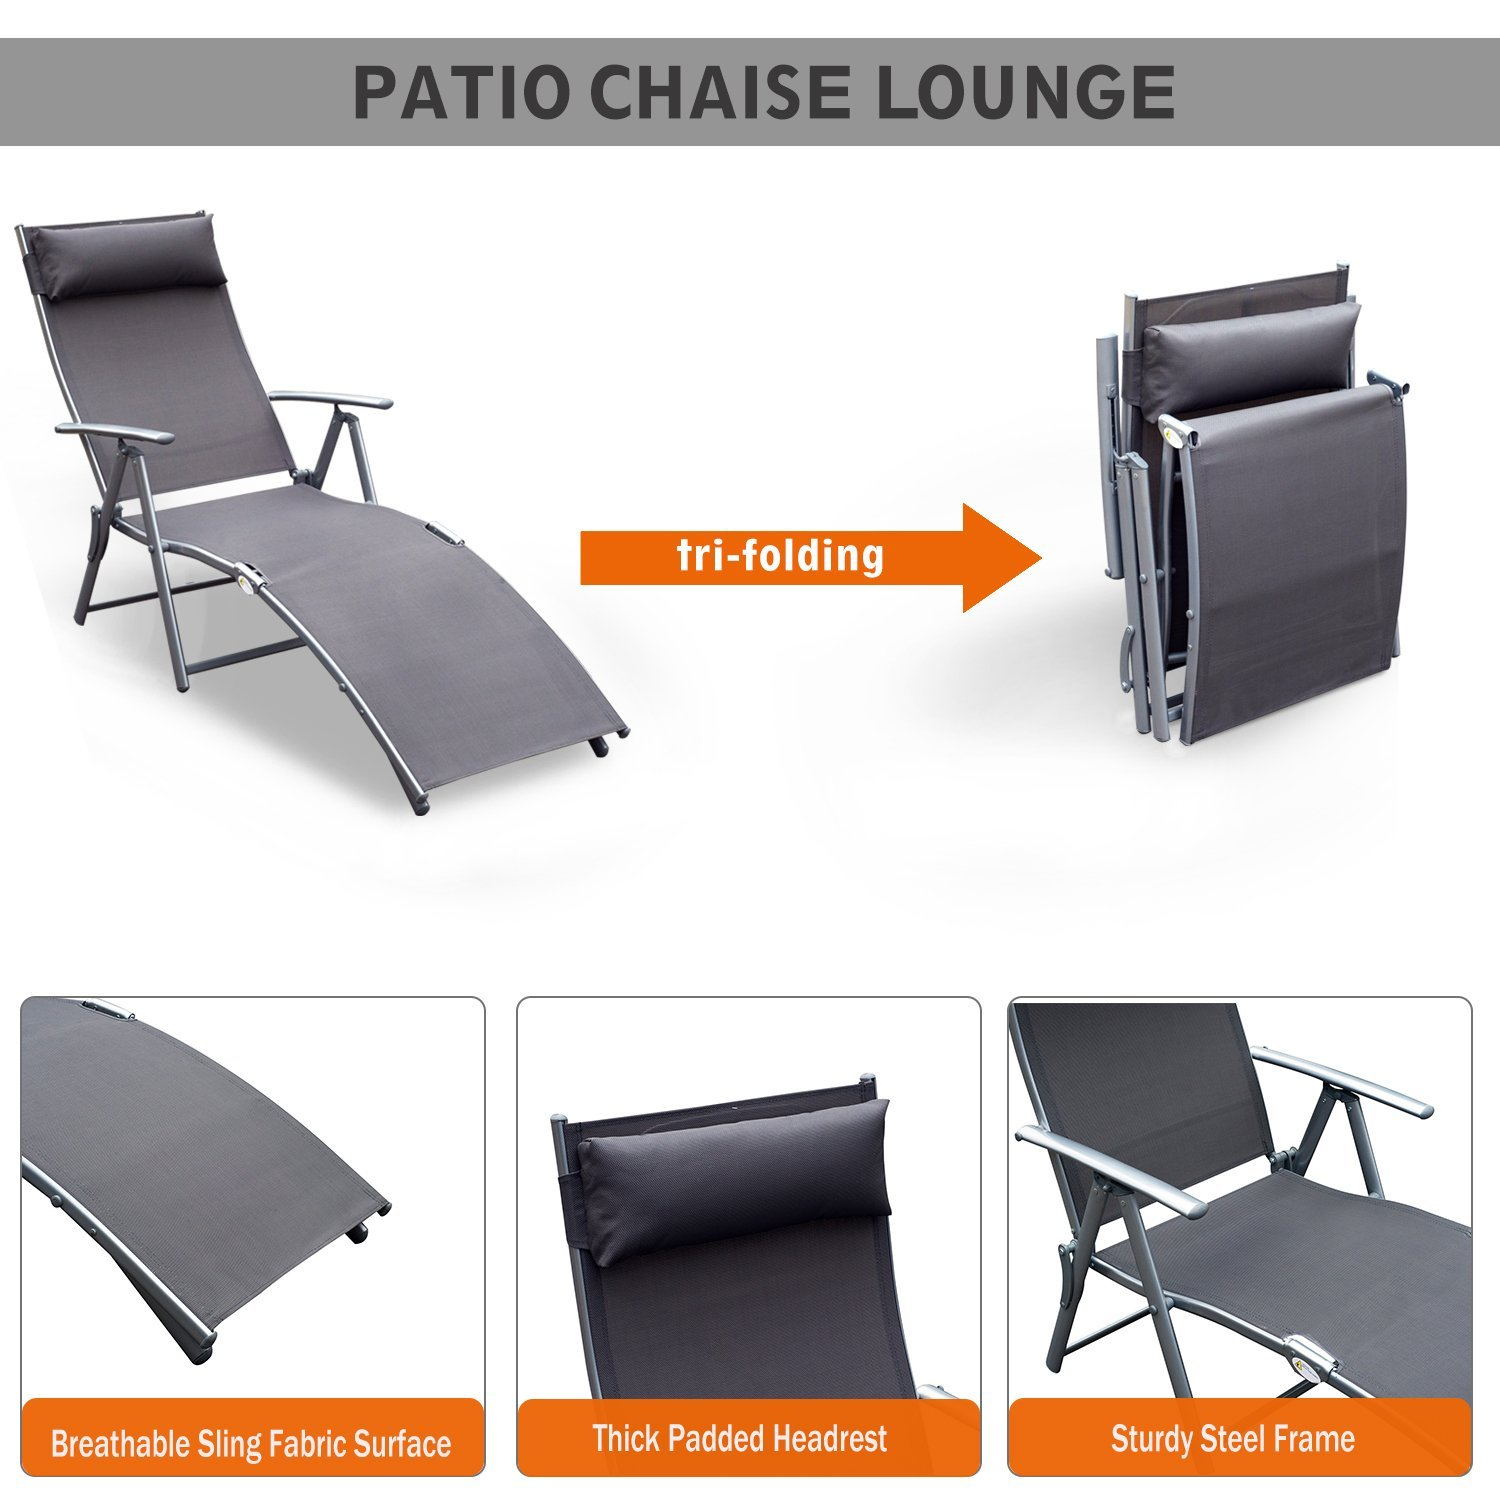 Groovy Outsunny Steel Sling Fabric Outdoor Folding Chaise Lounge Chair Recliner Grey Unemploymentrelief Wooden Chair Designs For Living Room Unemploymentrelieforg